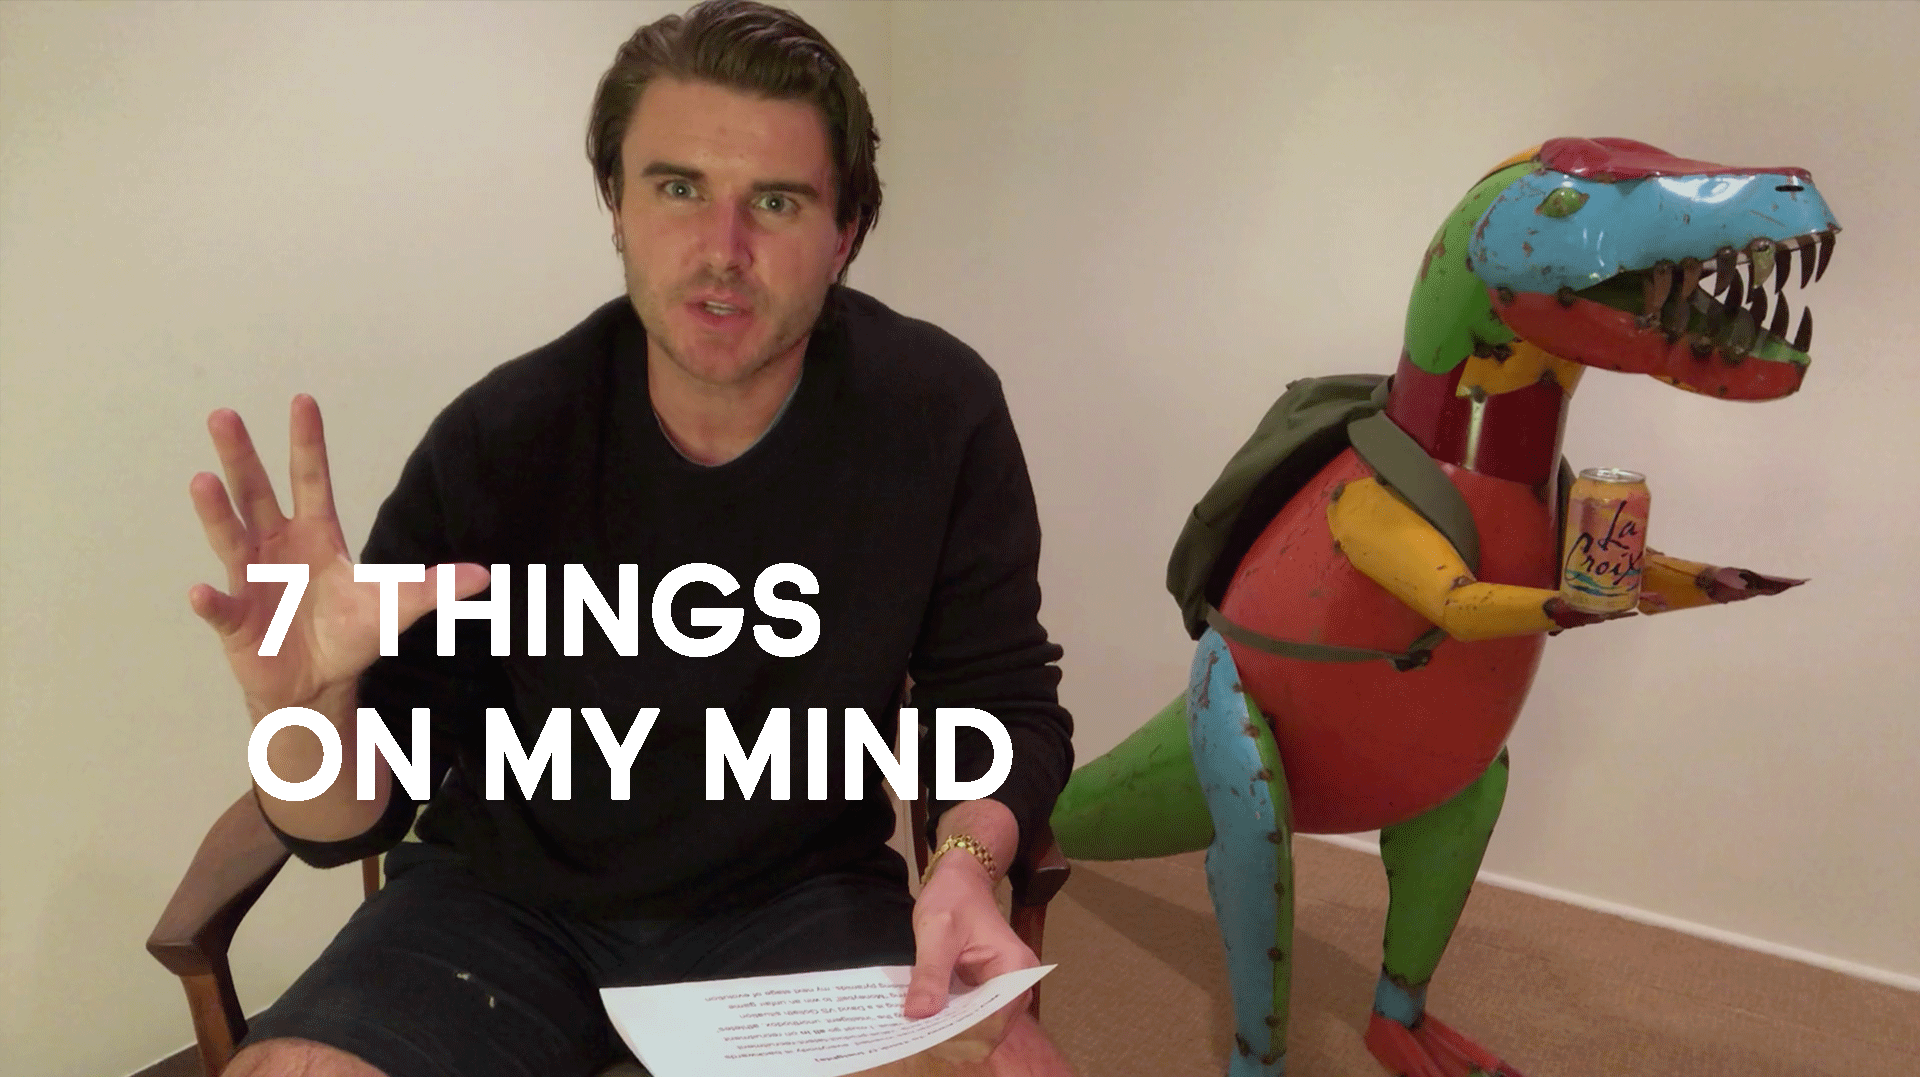 Why I Get Away To Think (7 Things On My Mind)